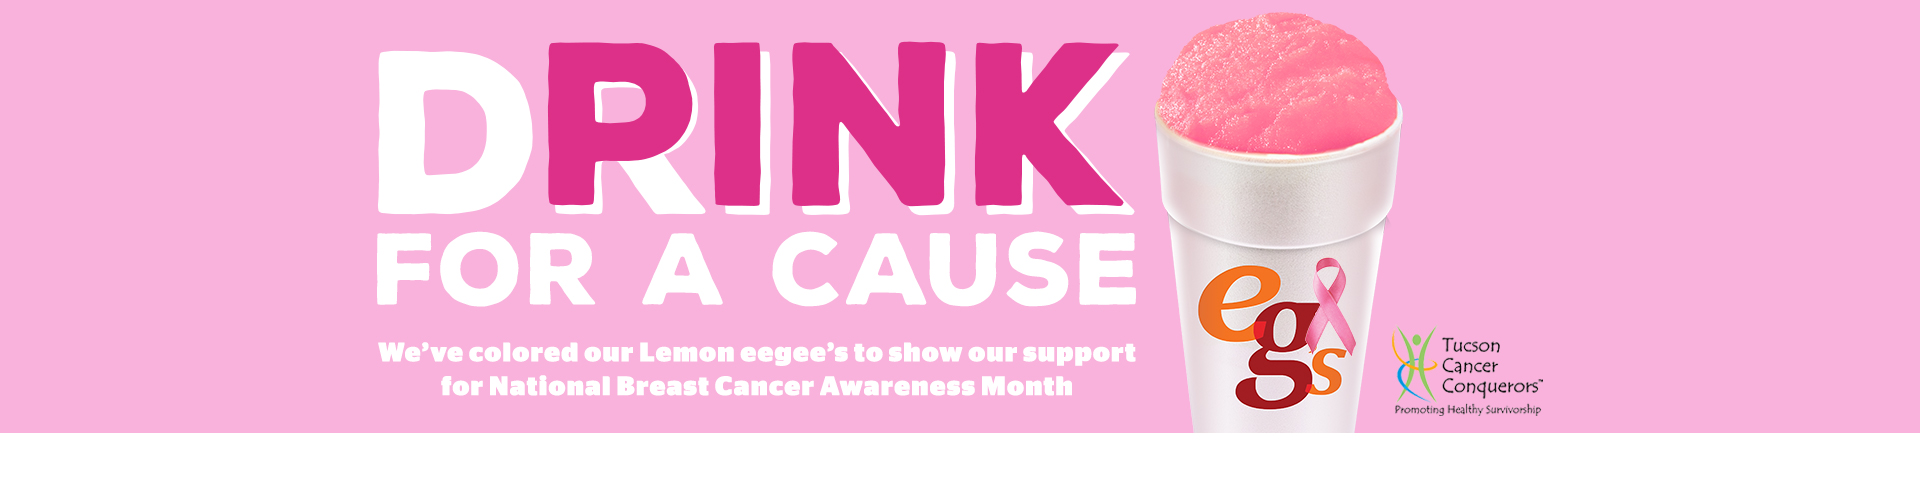 Drink Pink for a Cause